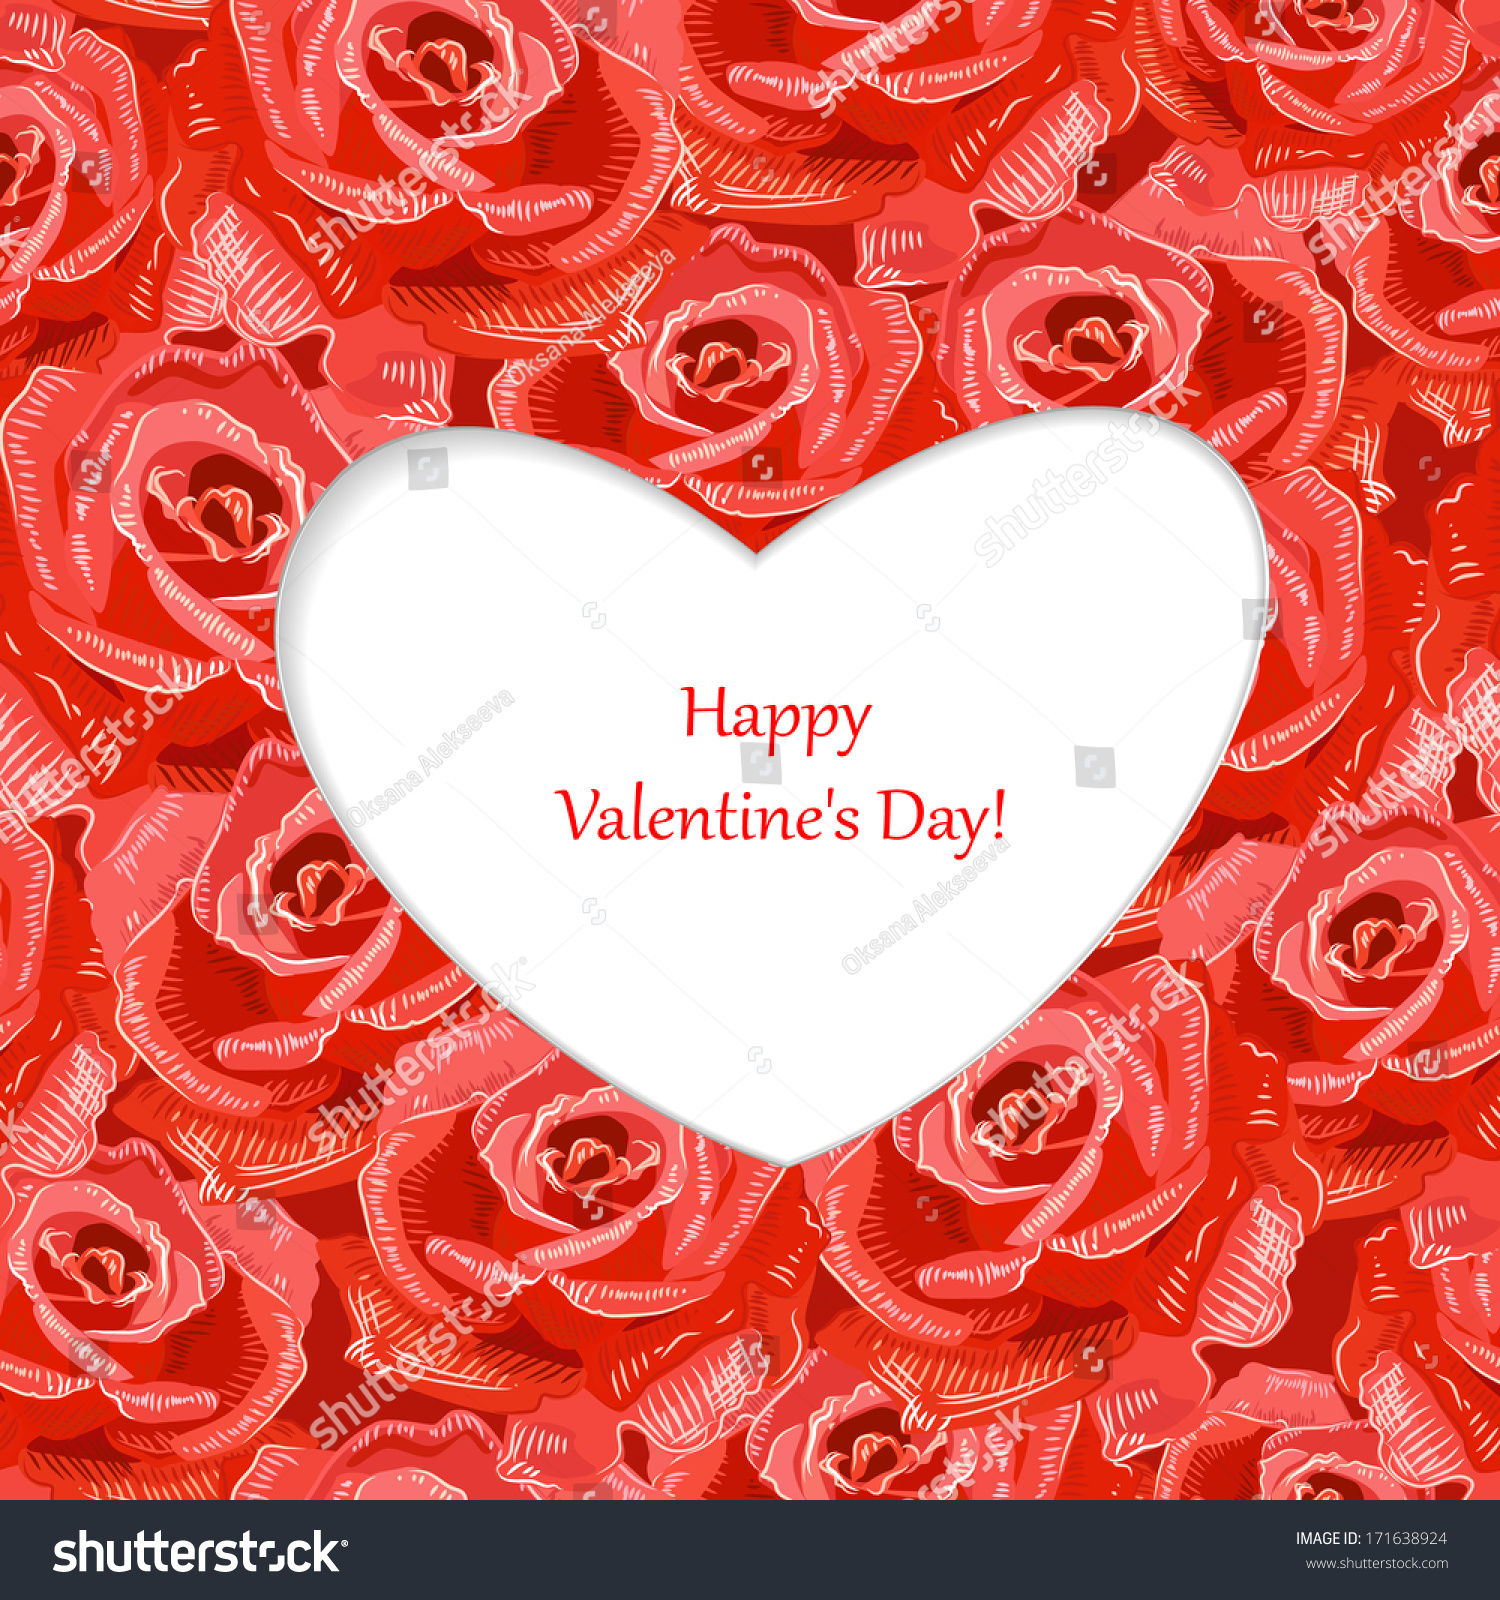 Design Greeting Cards Valentines Day Stock Vector 171638924